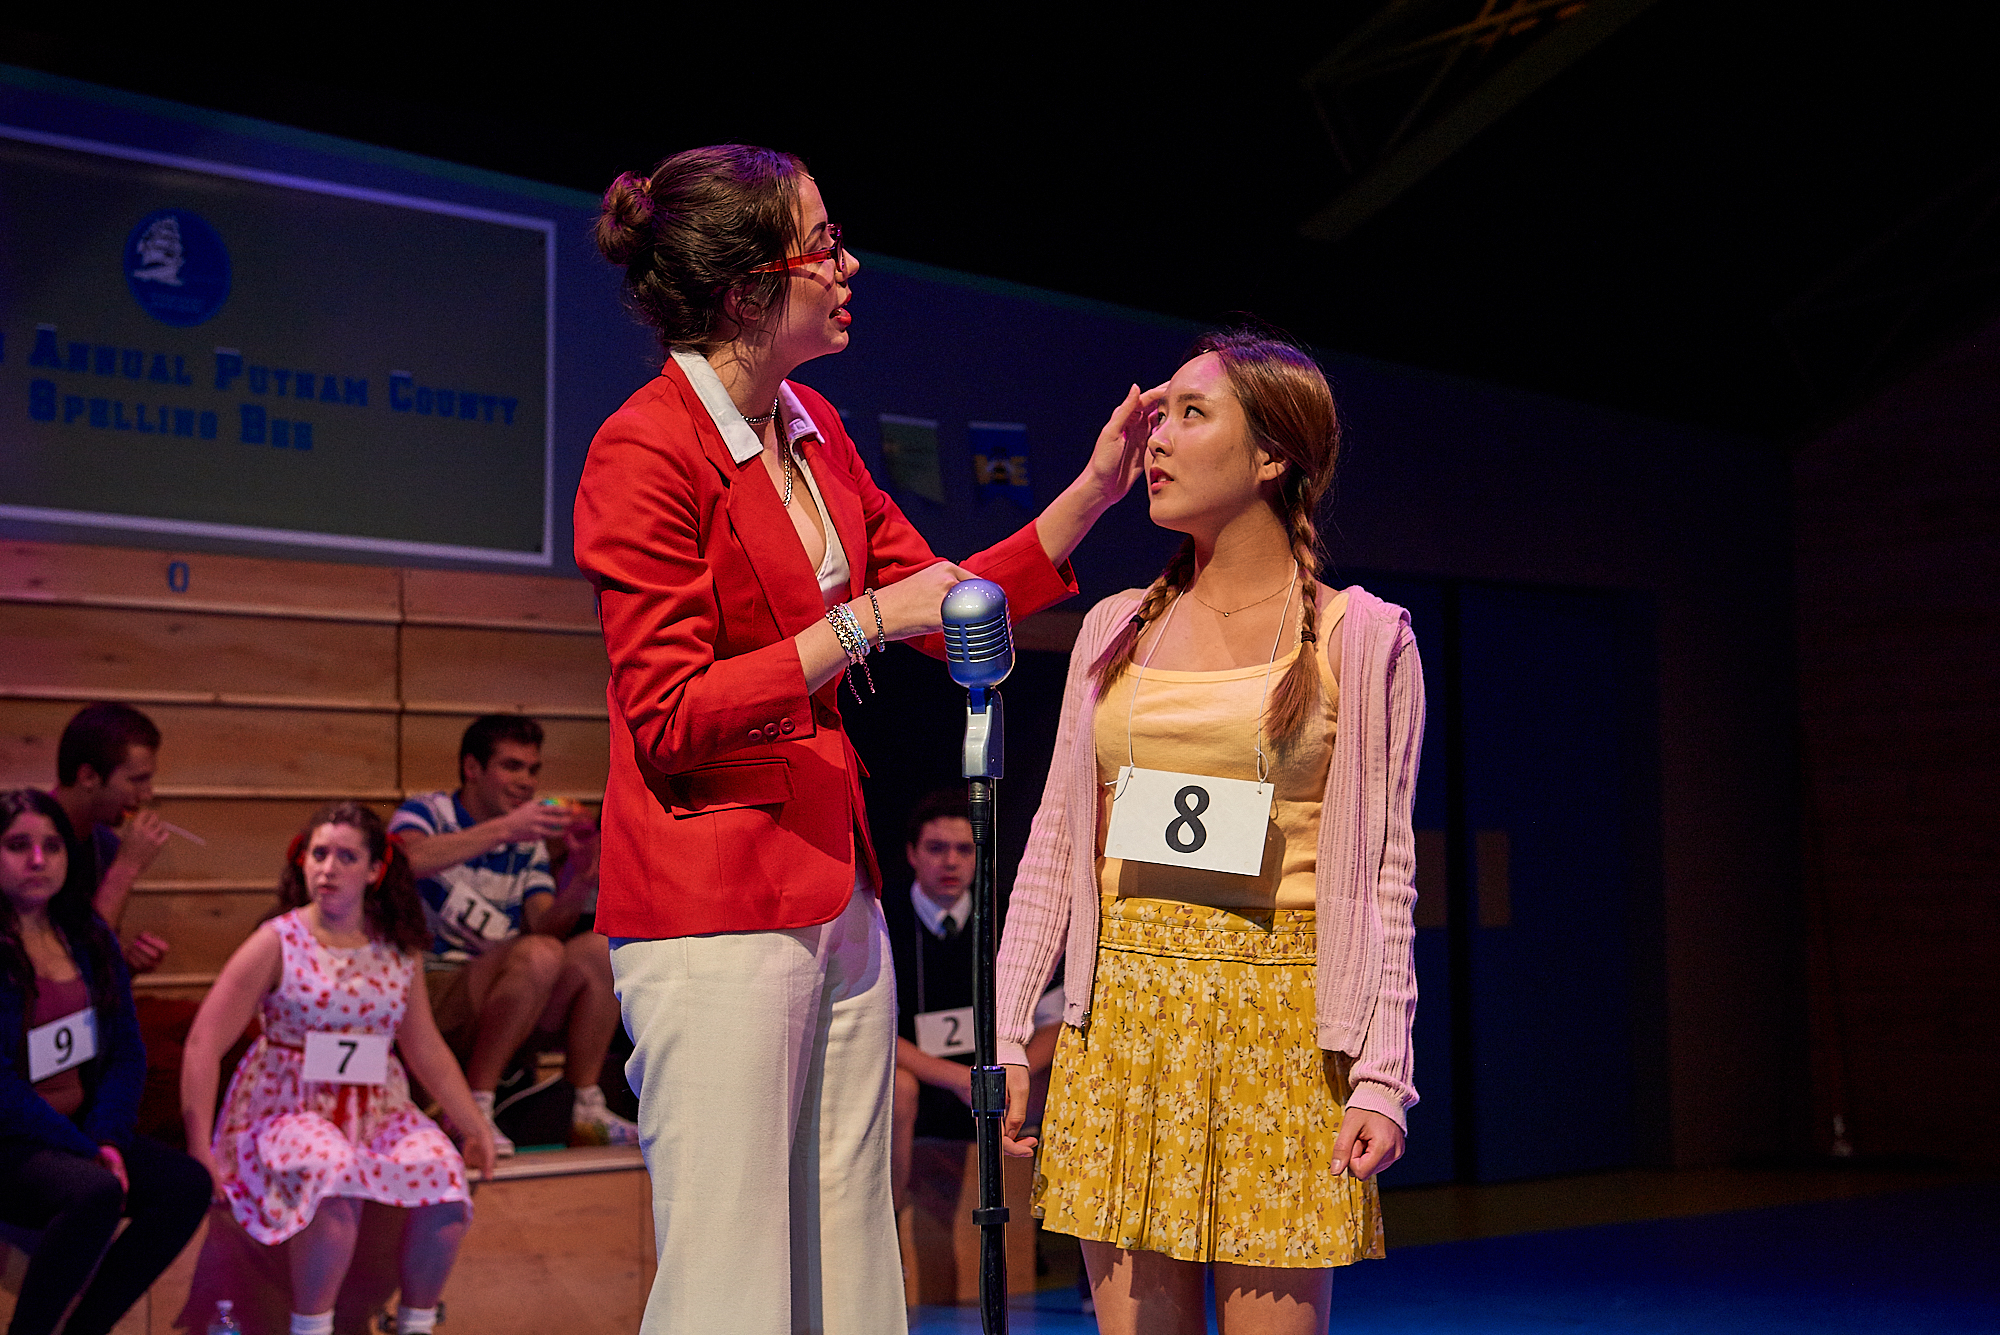 Colgate University's Autumn Musical Production: The 25th Annual Putnam County Spelling Bee at the Brehmer Theater. The play features a score by William Finn and is based on a book by Rachel Sheinkin. Directed by Simona Giurgea, with Musical Direction by Frederick Willard.